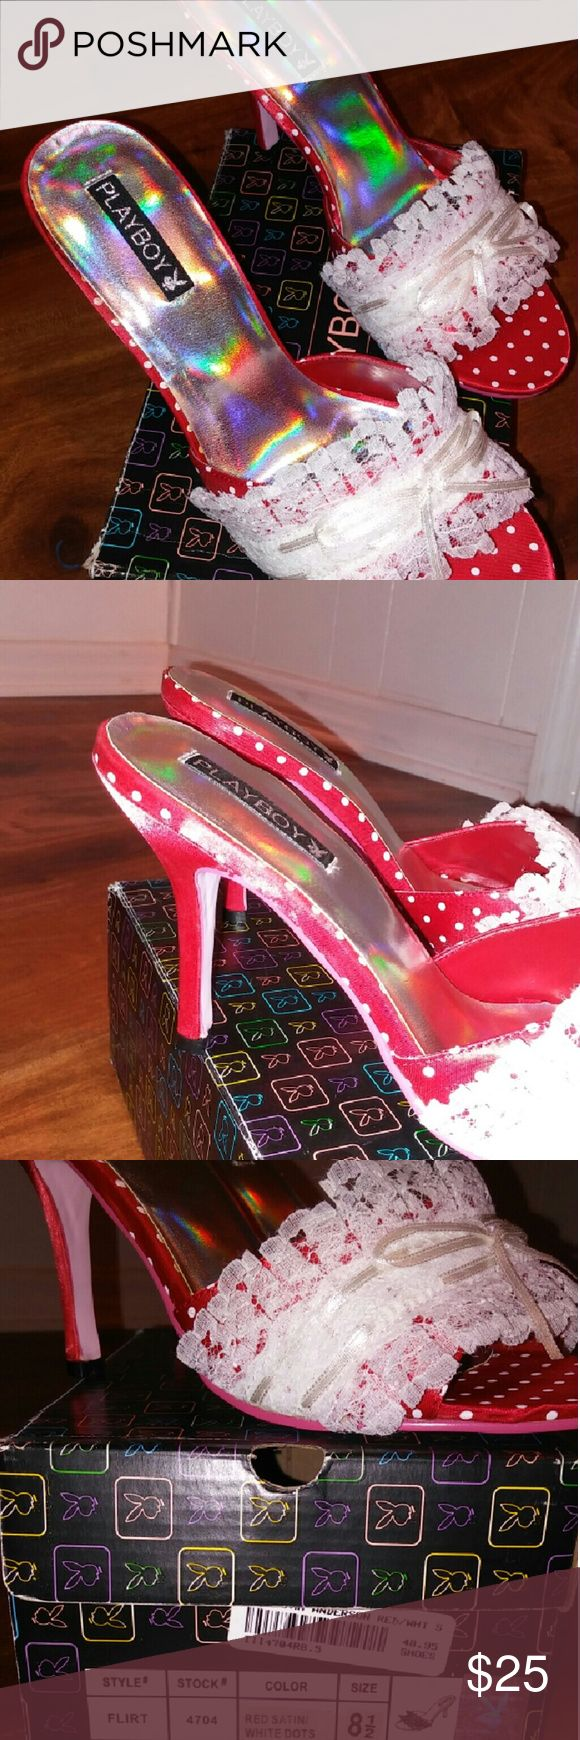 Playboy Heels🆕 NWT Pamela Anderson Red satin with polka dots.  I have size two sizes in these  8 1/2 and 6 1/2 Brand new still in box Value $48.95 Playboy Shoes Heels